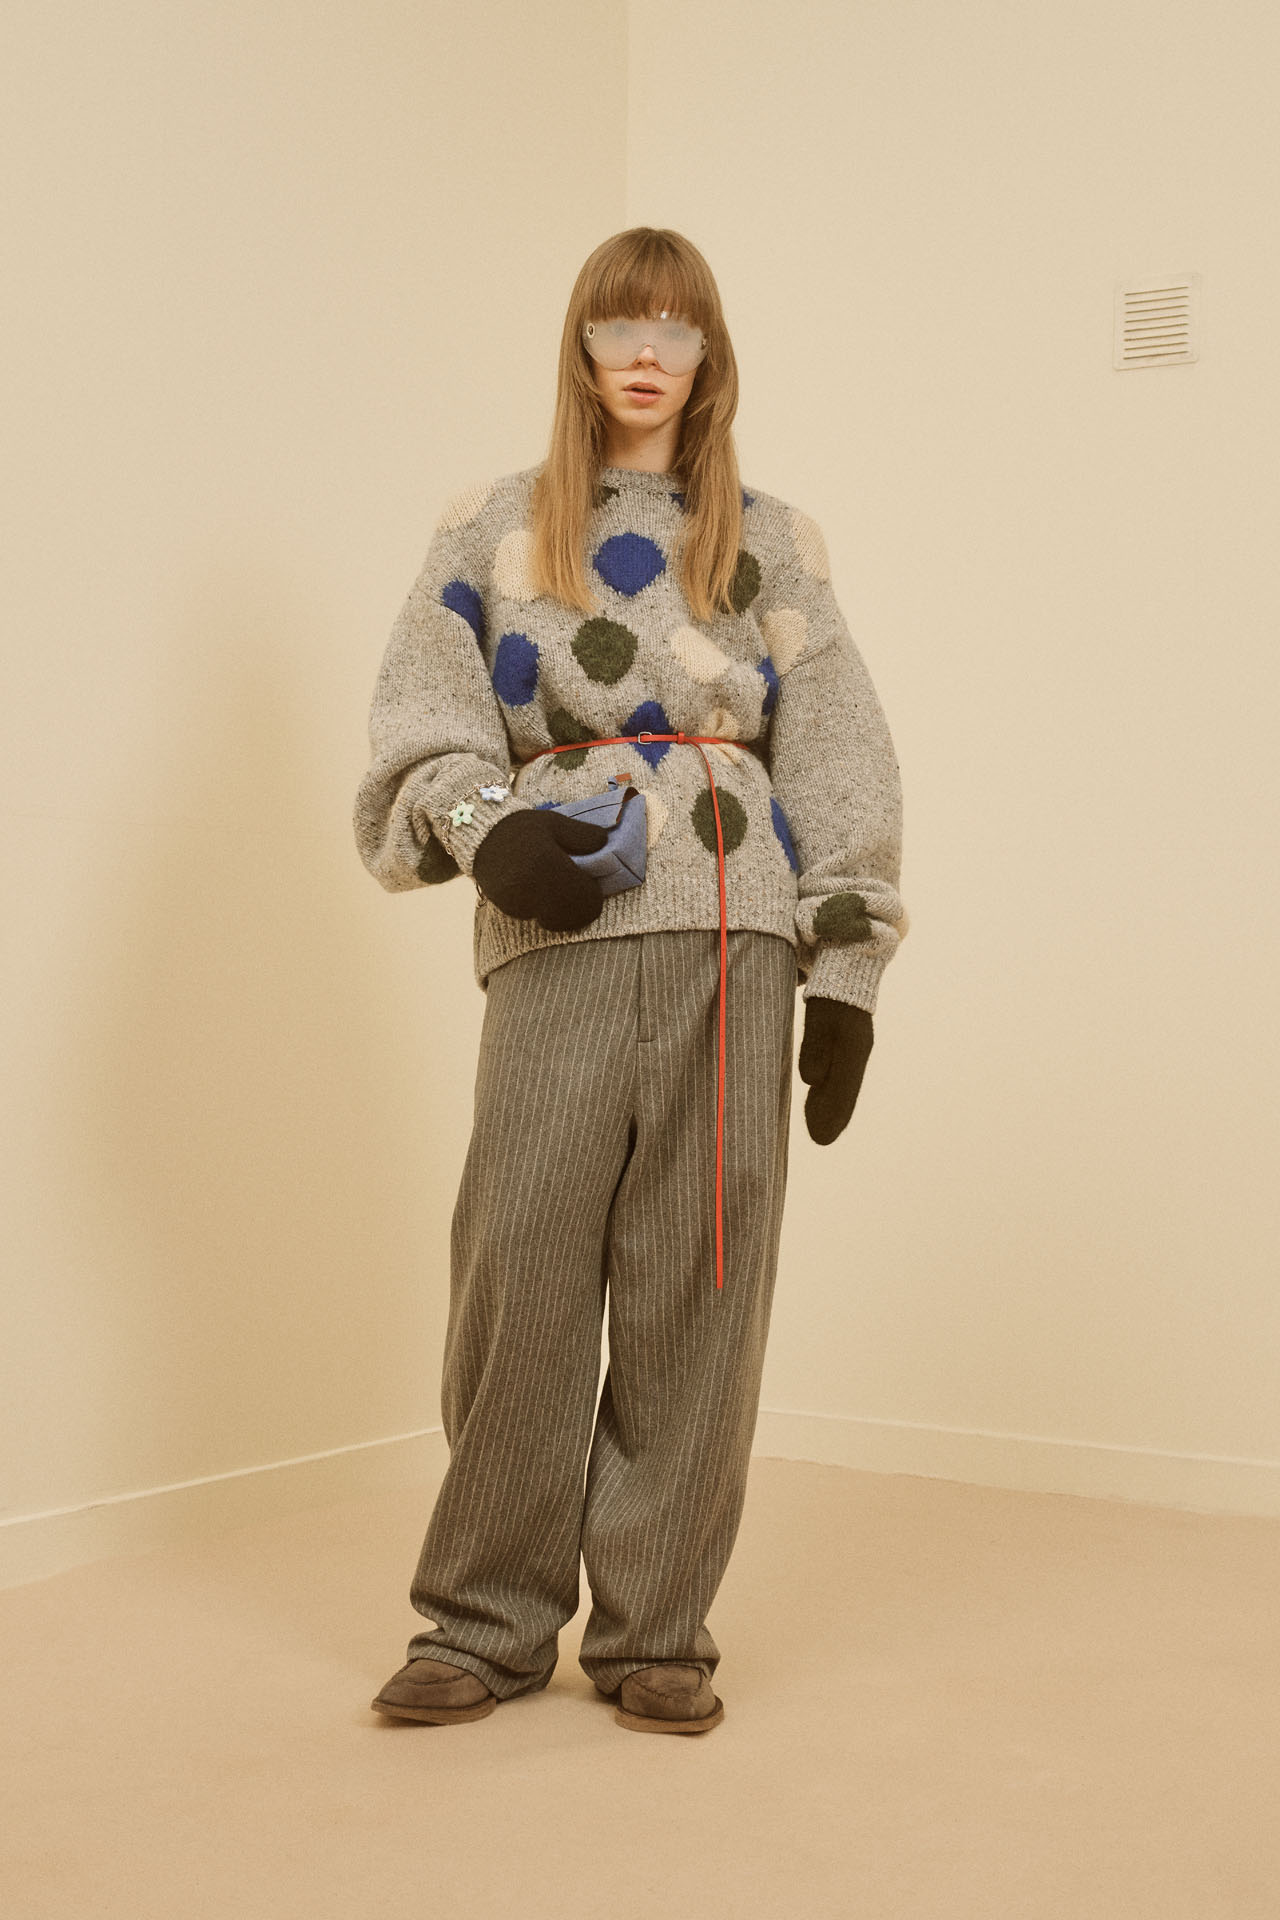 Look Fall/Winter 2021, image 7